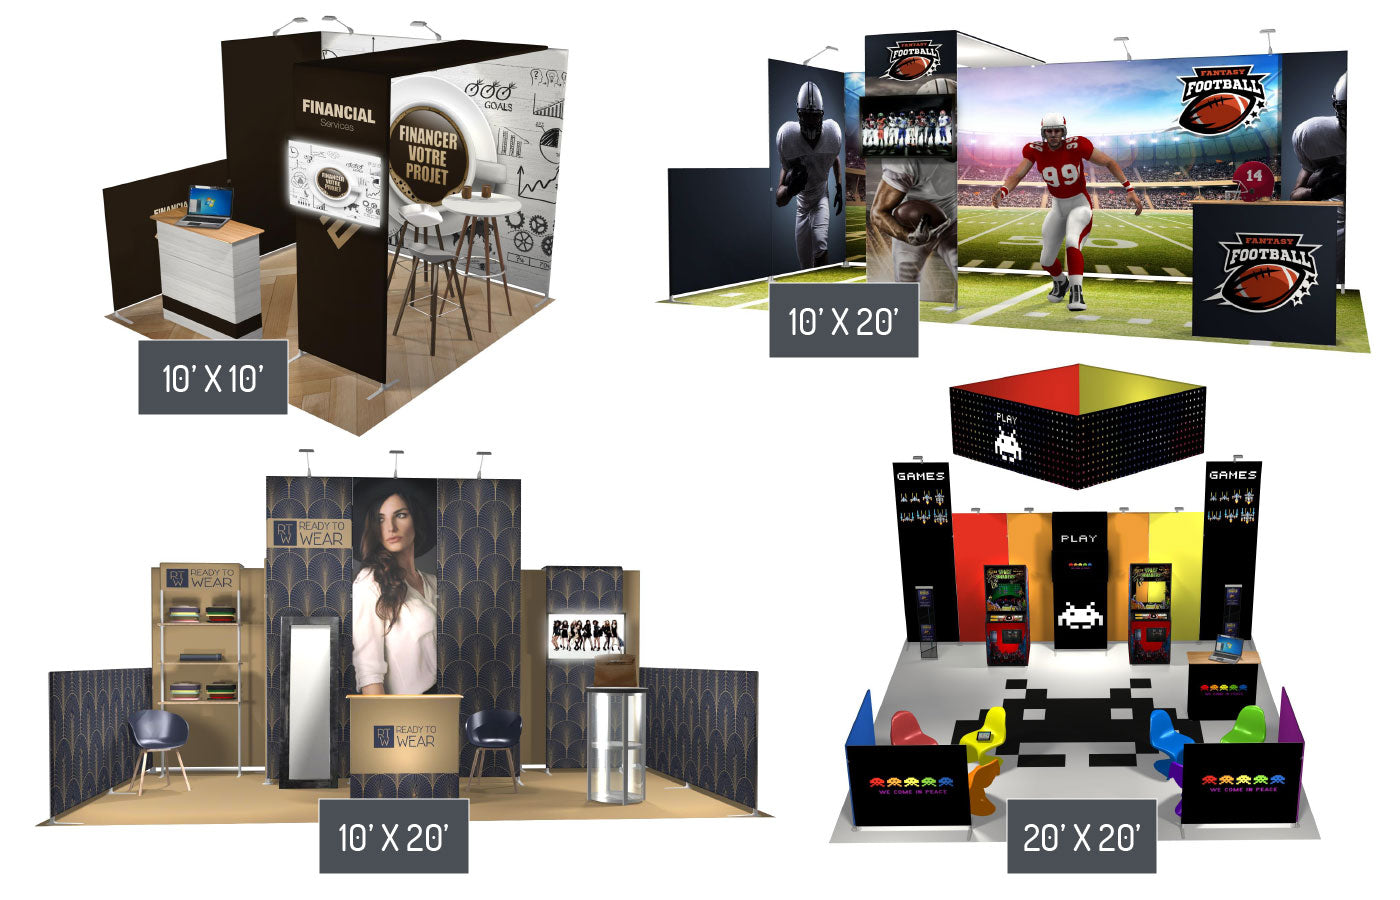 Contour portable trade show booth solutions 10' x 10', 10' x 20' and 20' x 20;